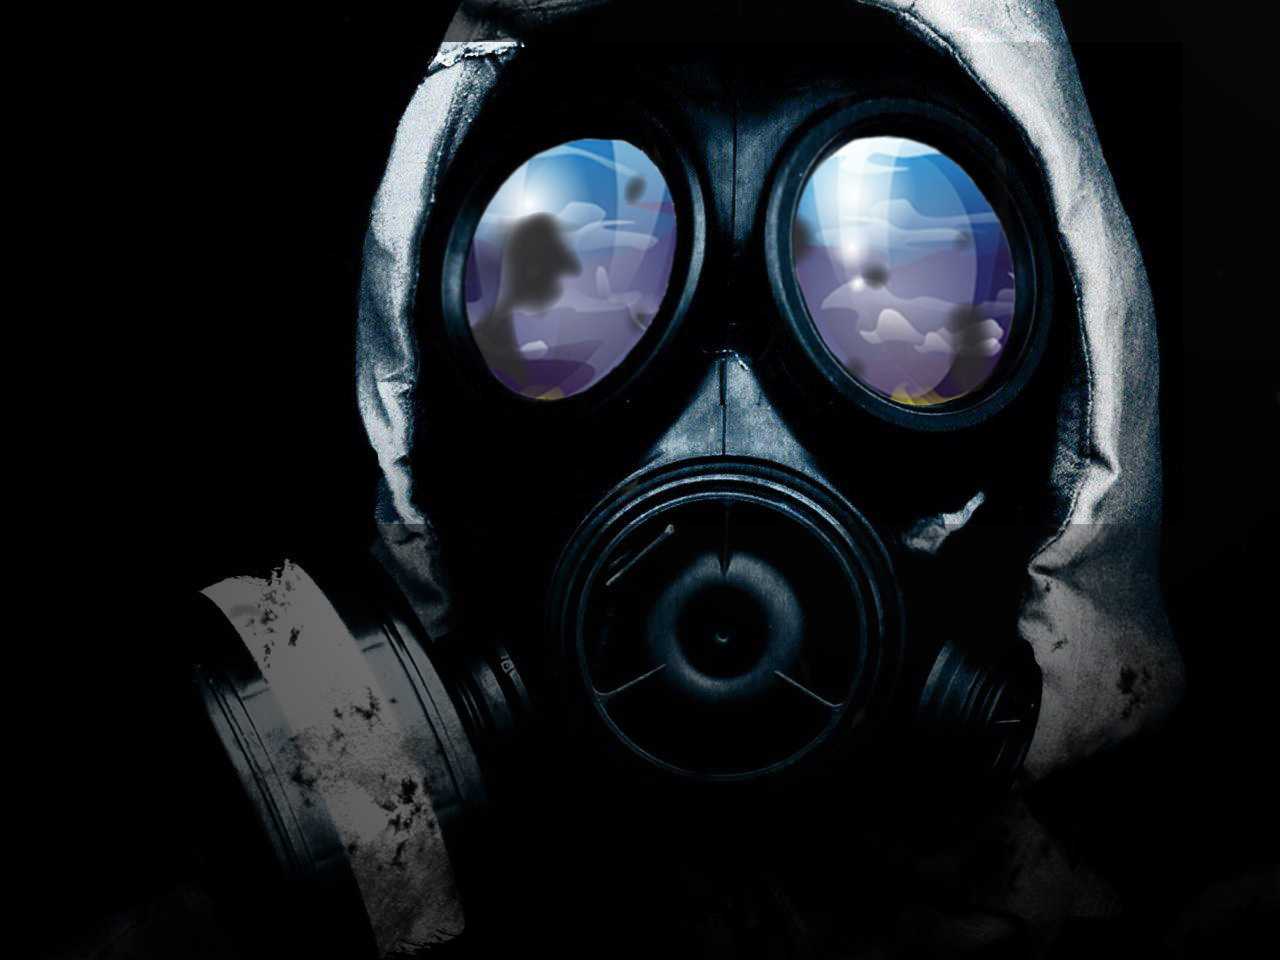 gas mask wallpaper hd - wallpapersafari